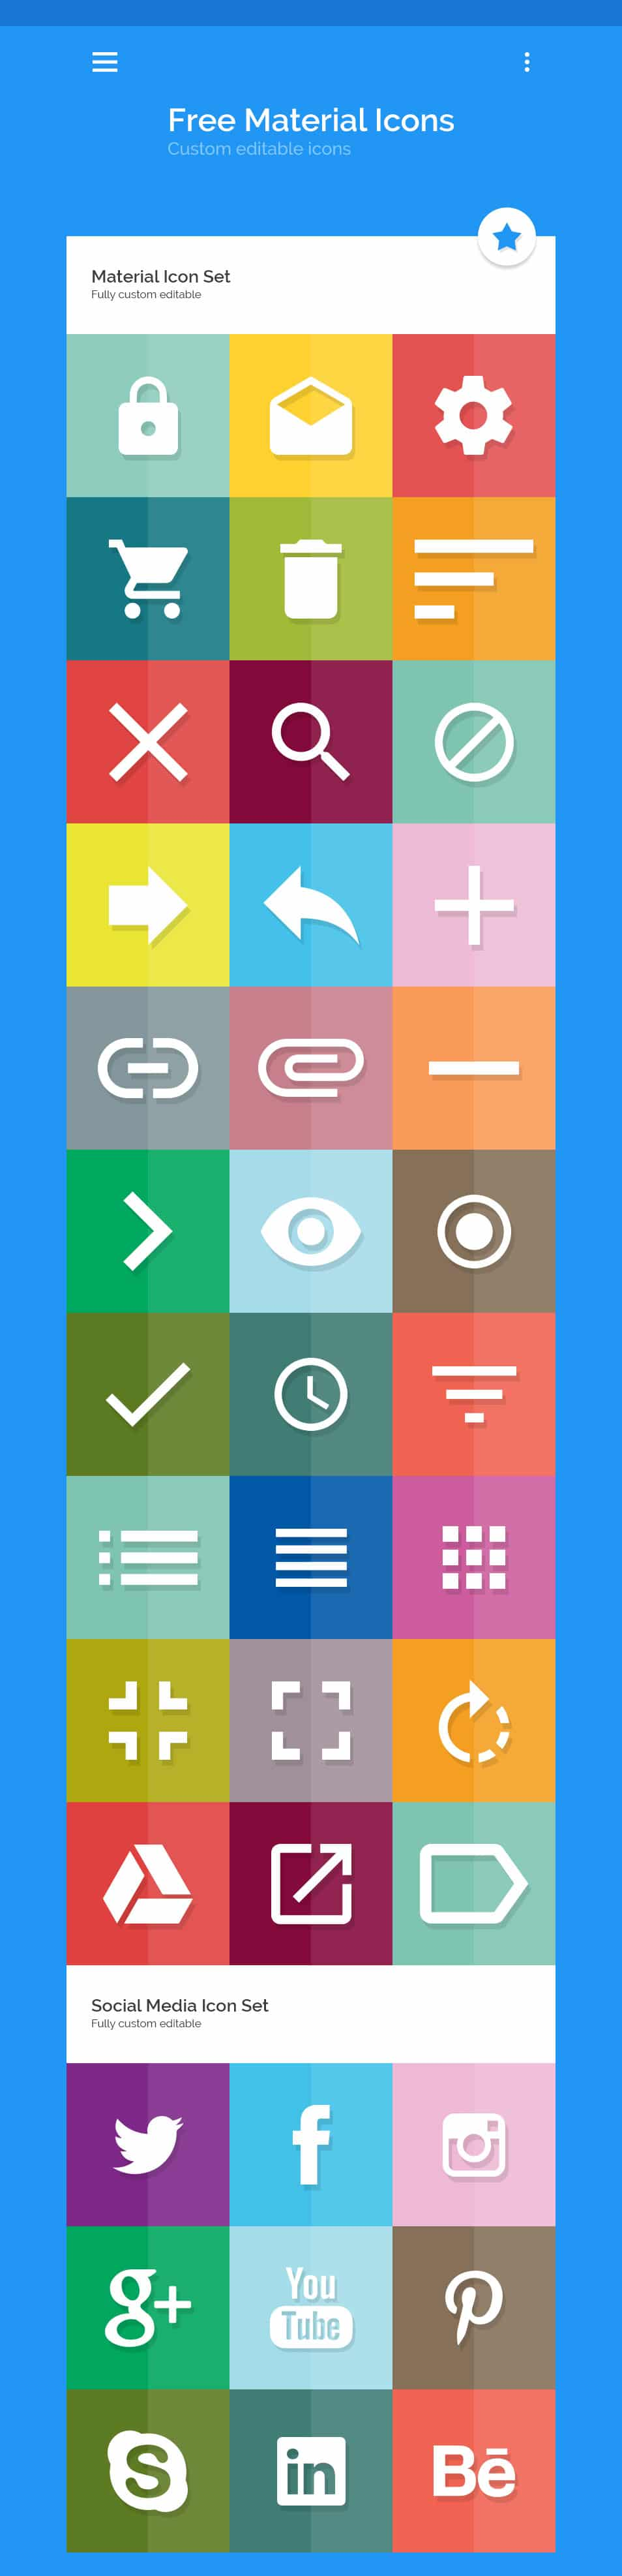 Free Material Icon Set